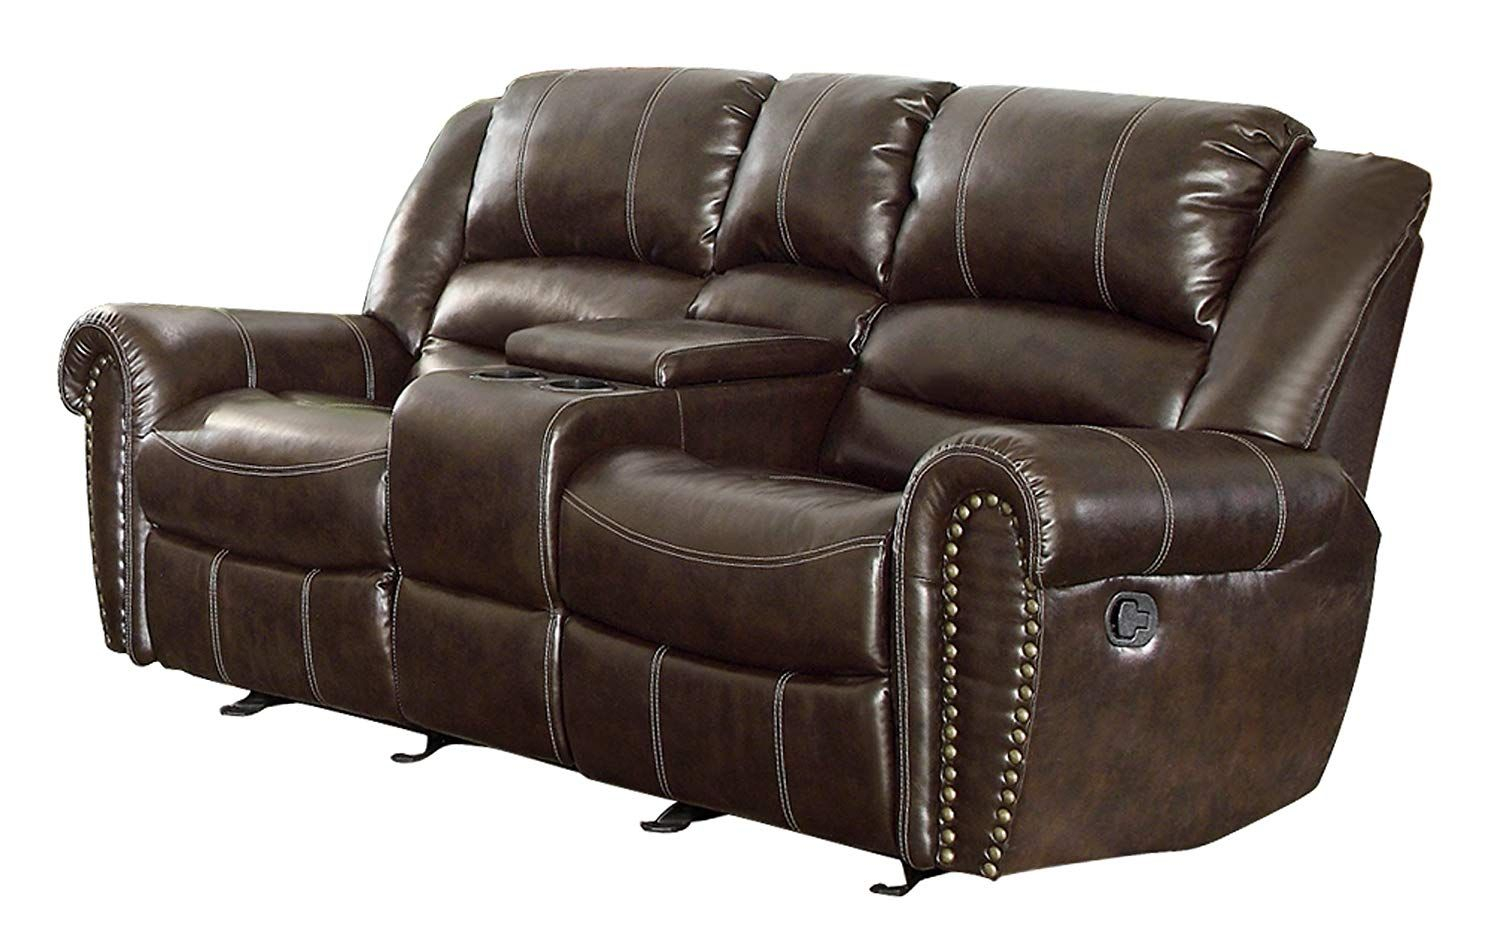 Loveseat Recliner Leather | Leather Reclining Sofa, Leather Pertaining To Double Glider Loveseats (Image 17 of 25)